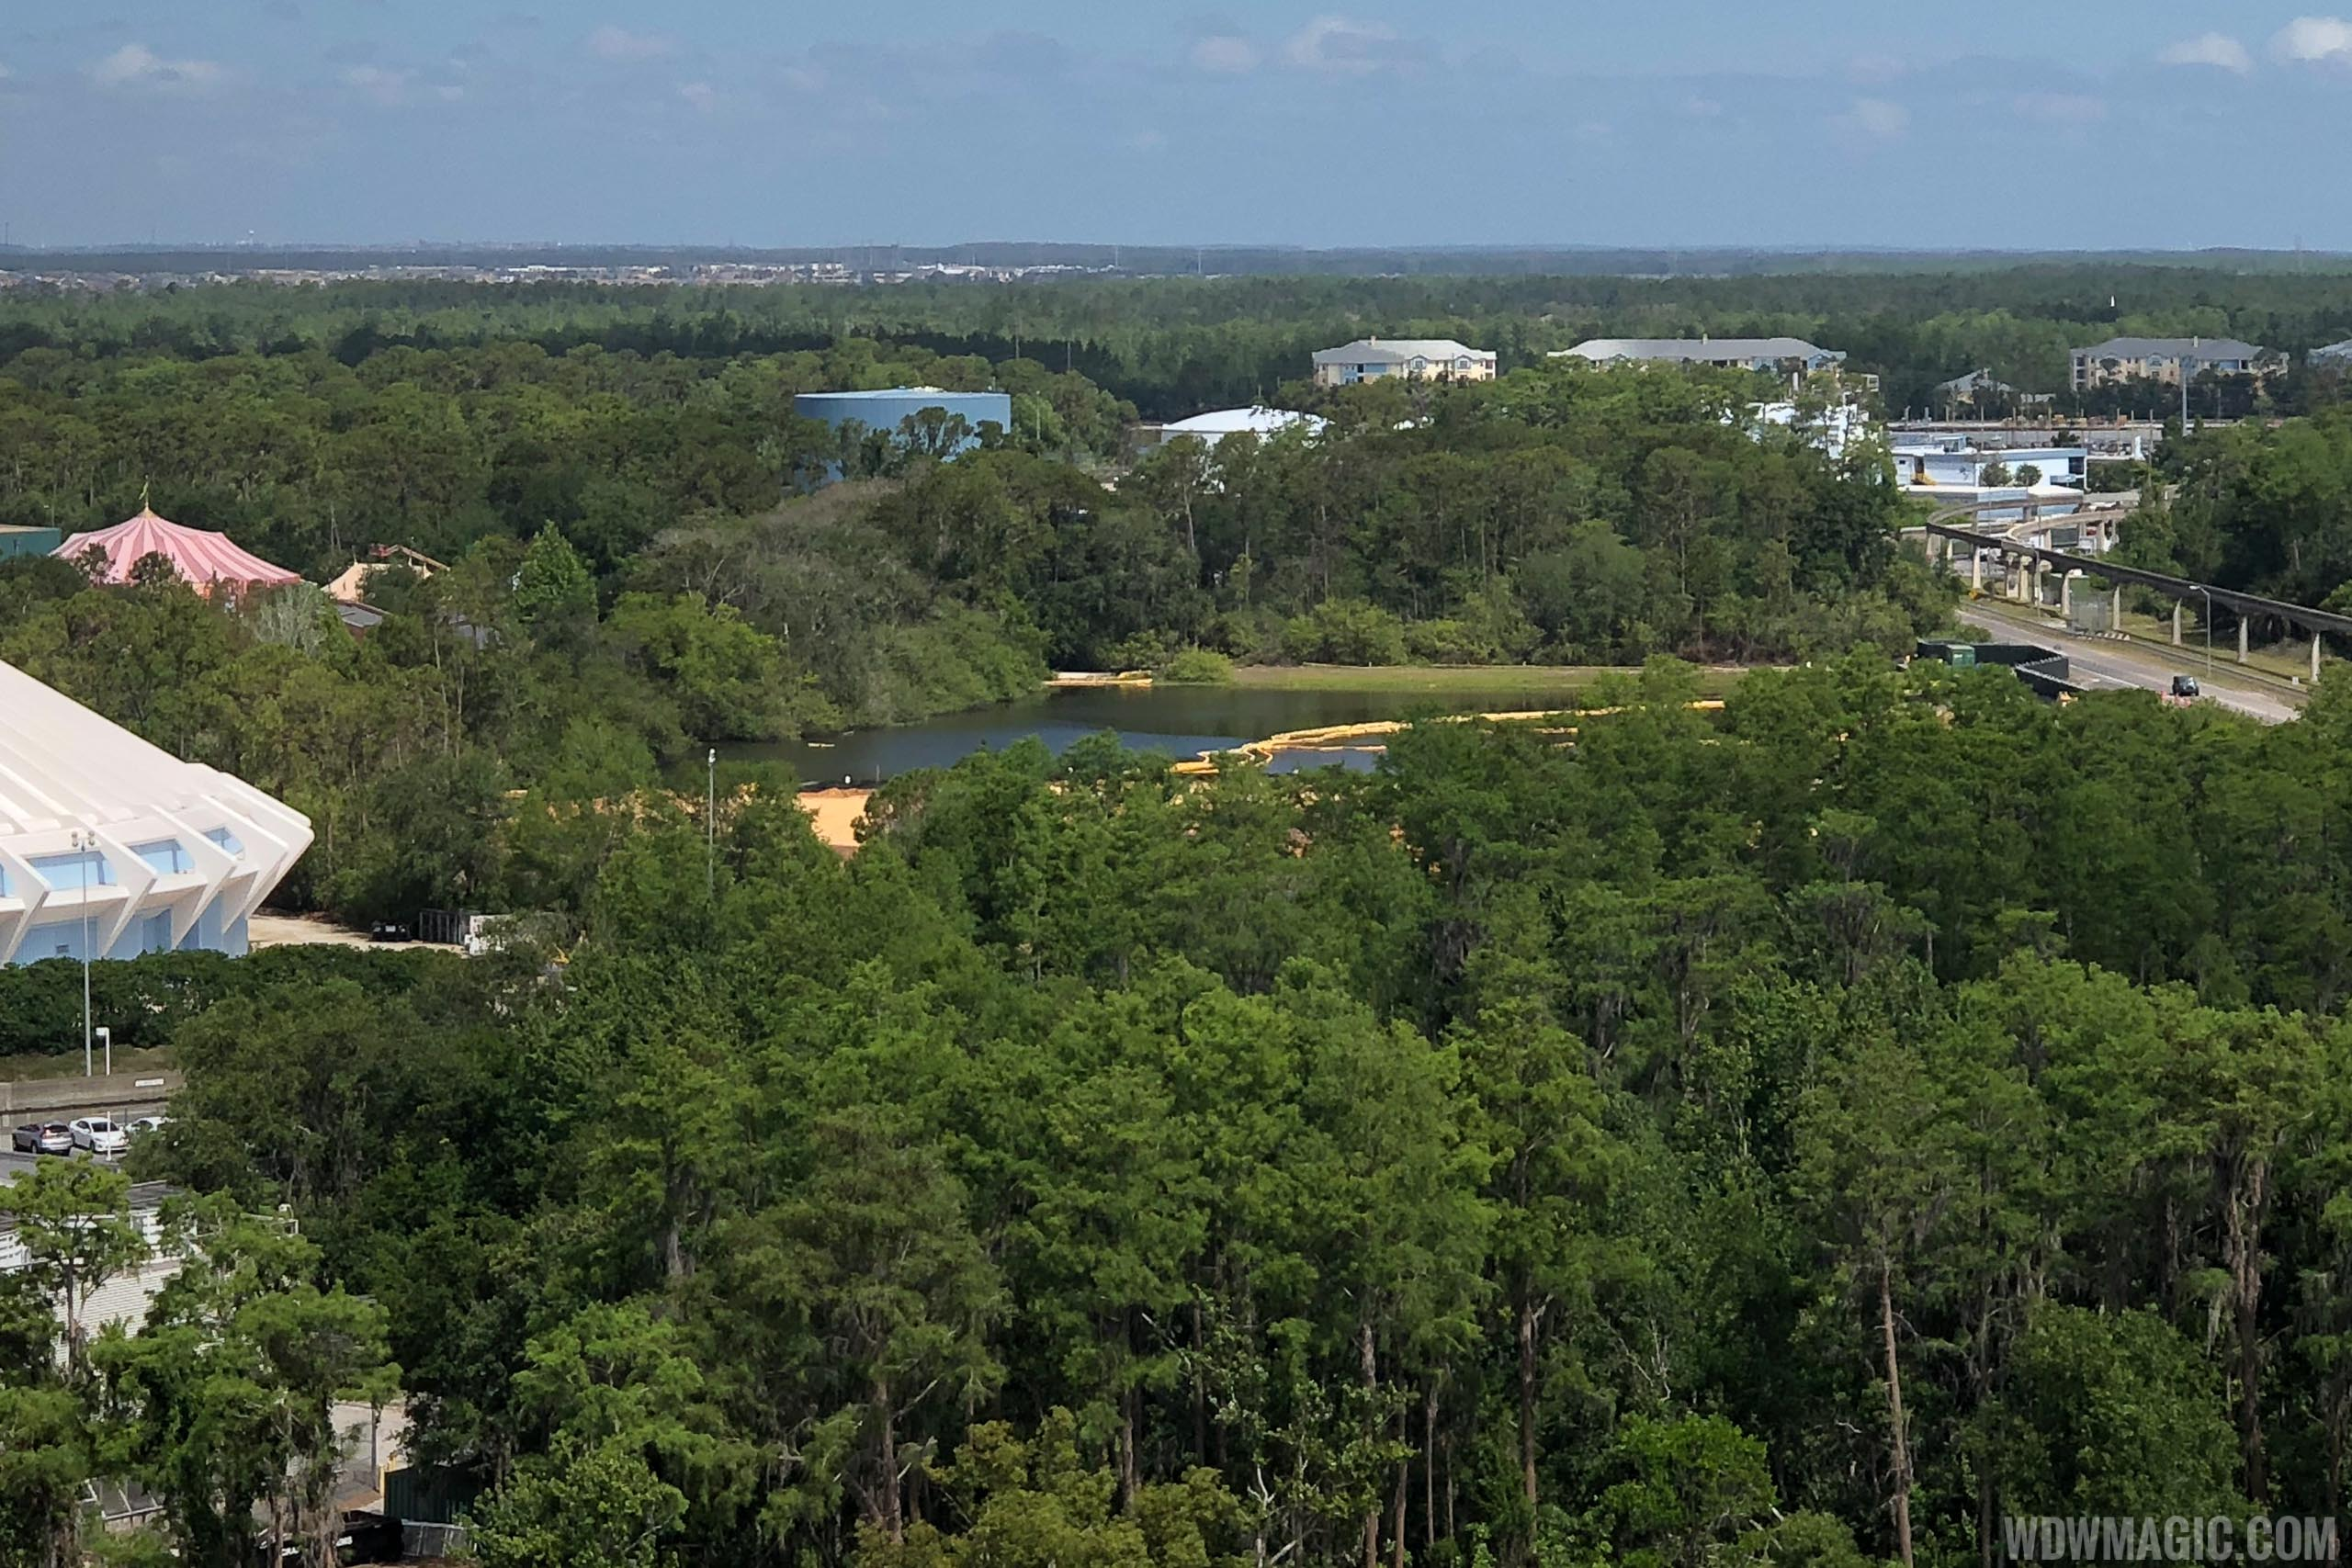 Tron ground clearing at the Magic Kingdom